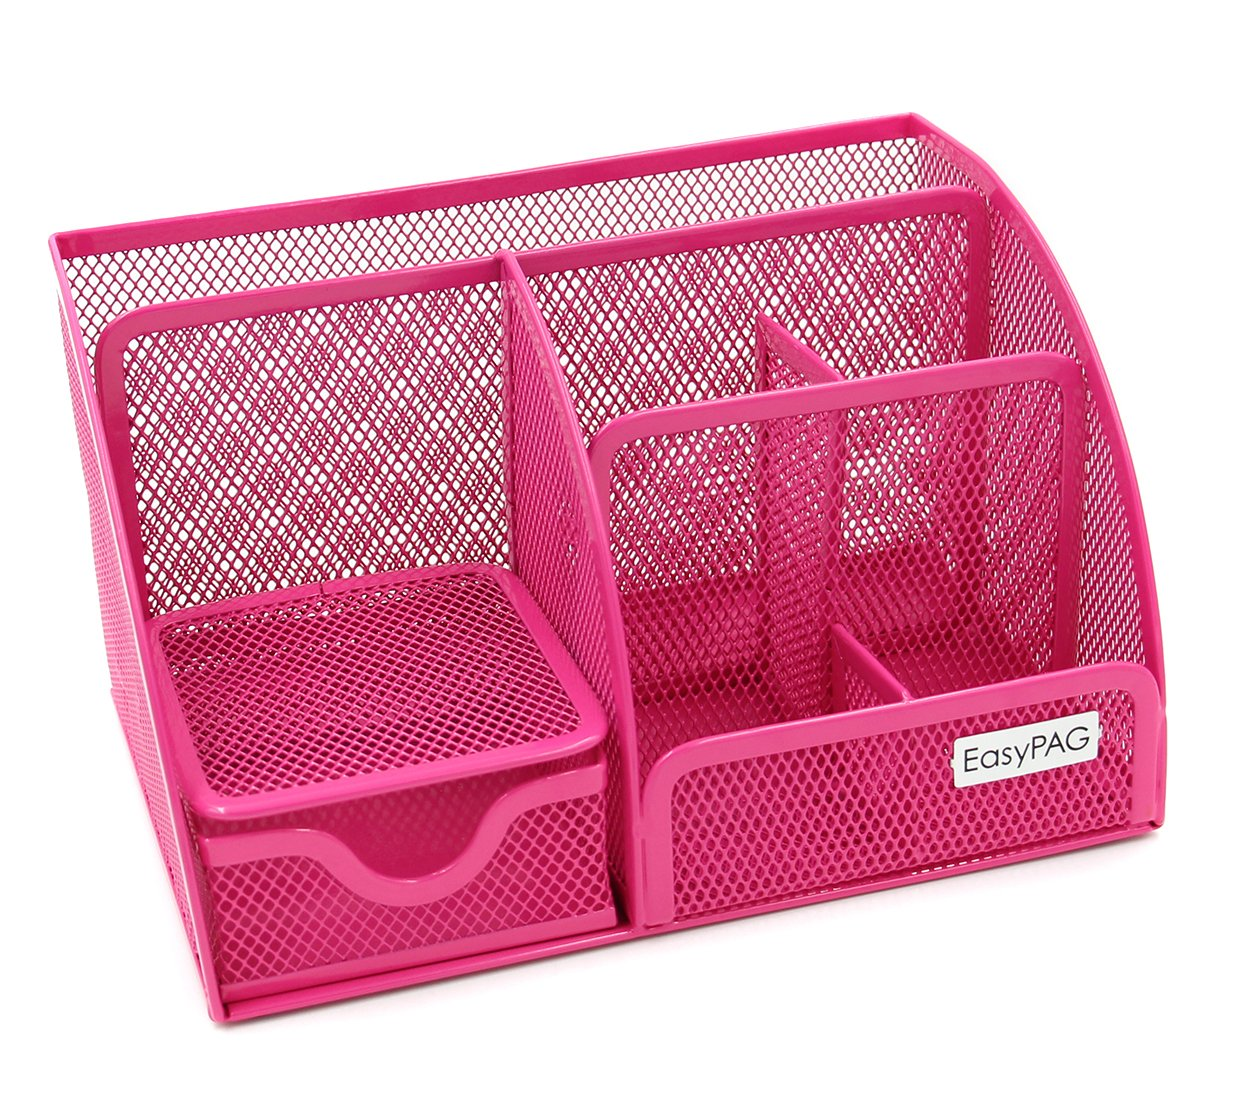 EasyPAG Mesh Office Desk Organizer 6 Compartments with Drawer,Pink